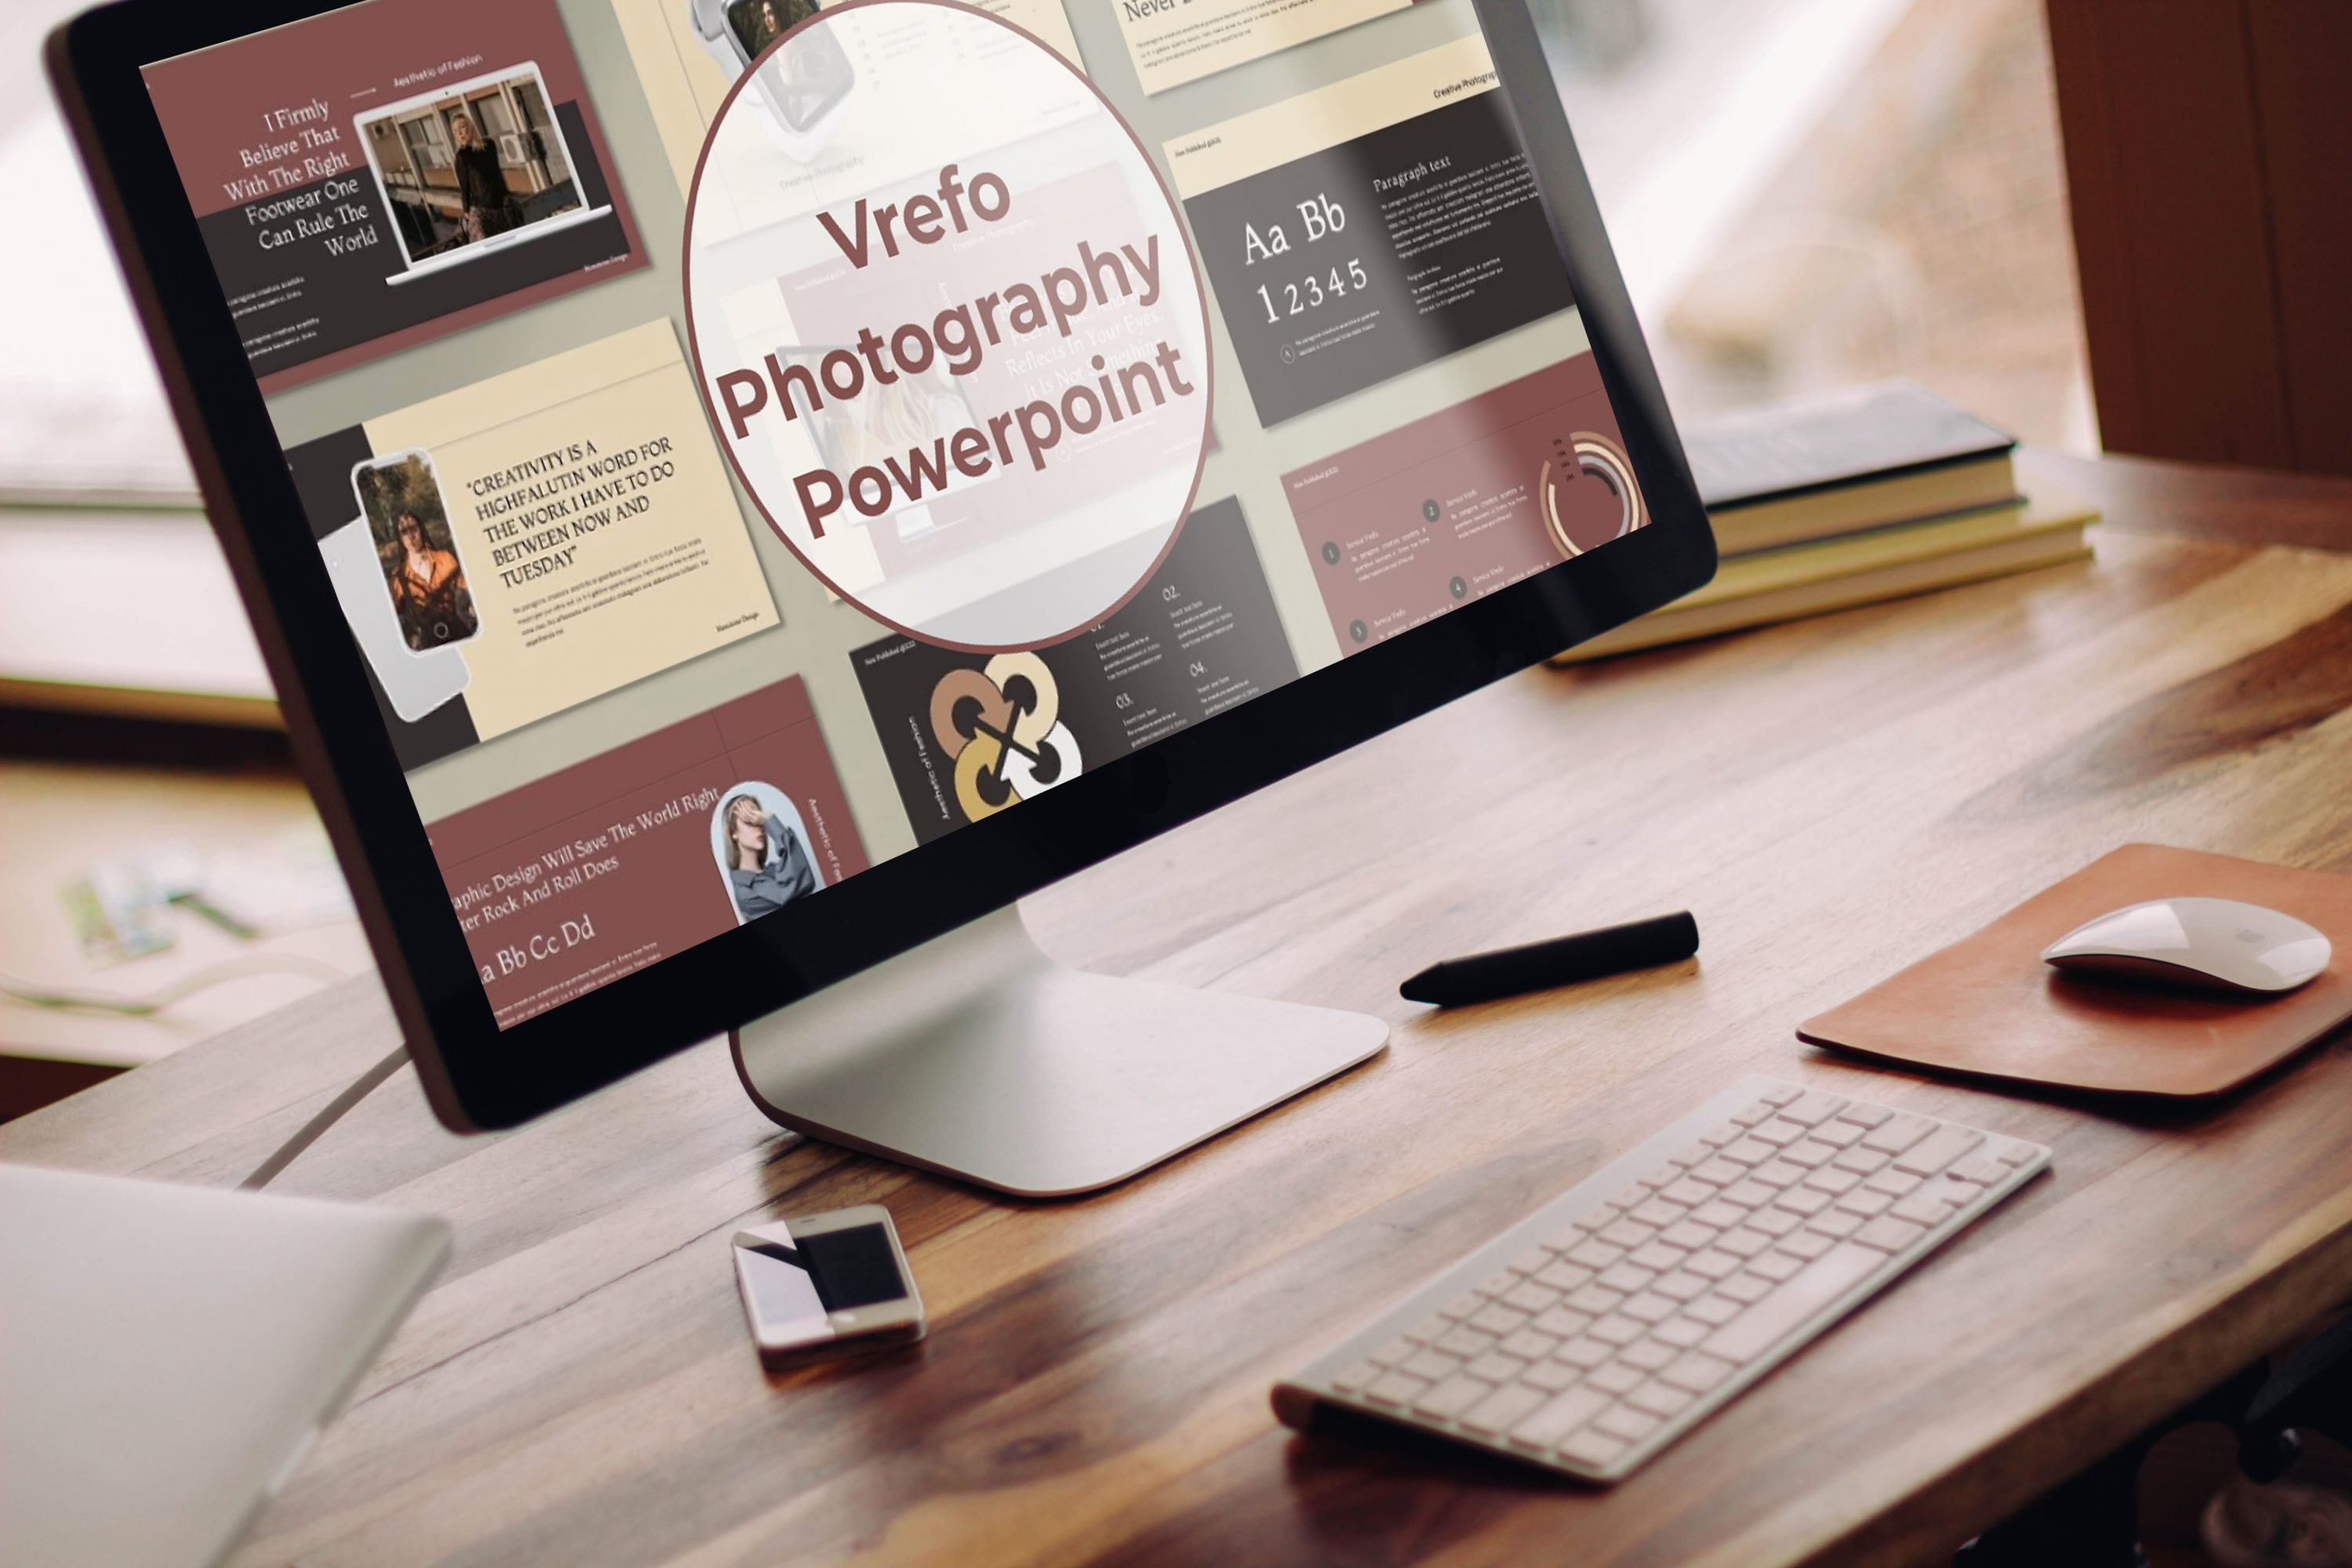 Desktop option of the Vrefo - Photography Powerpoint.